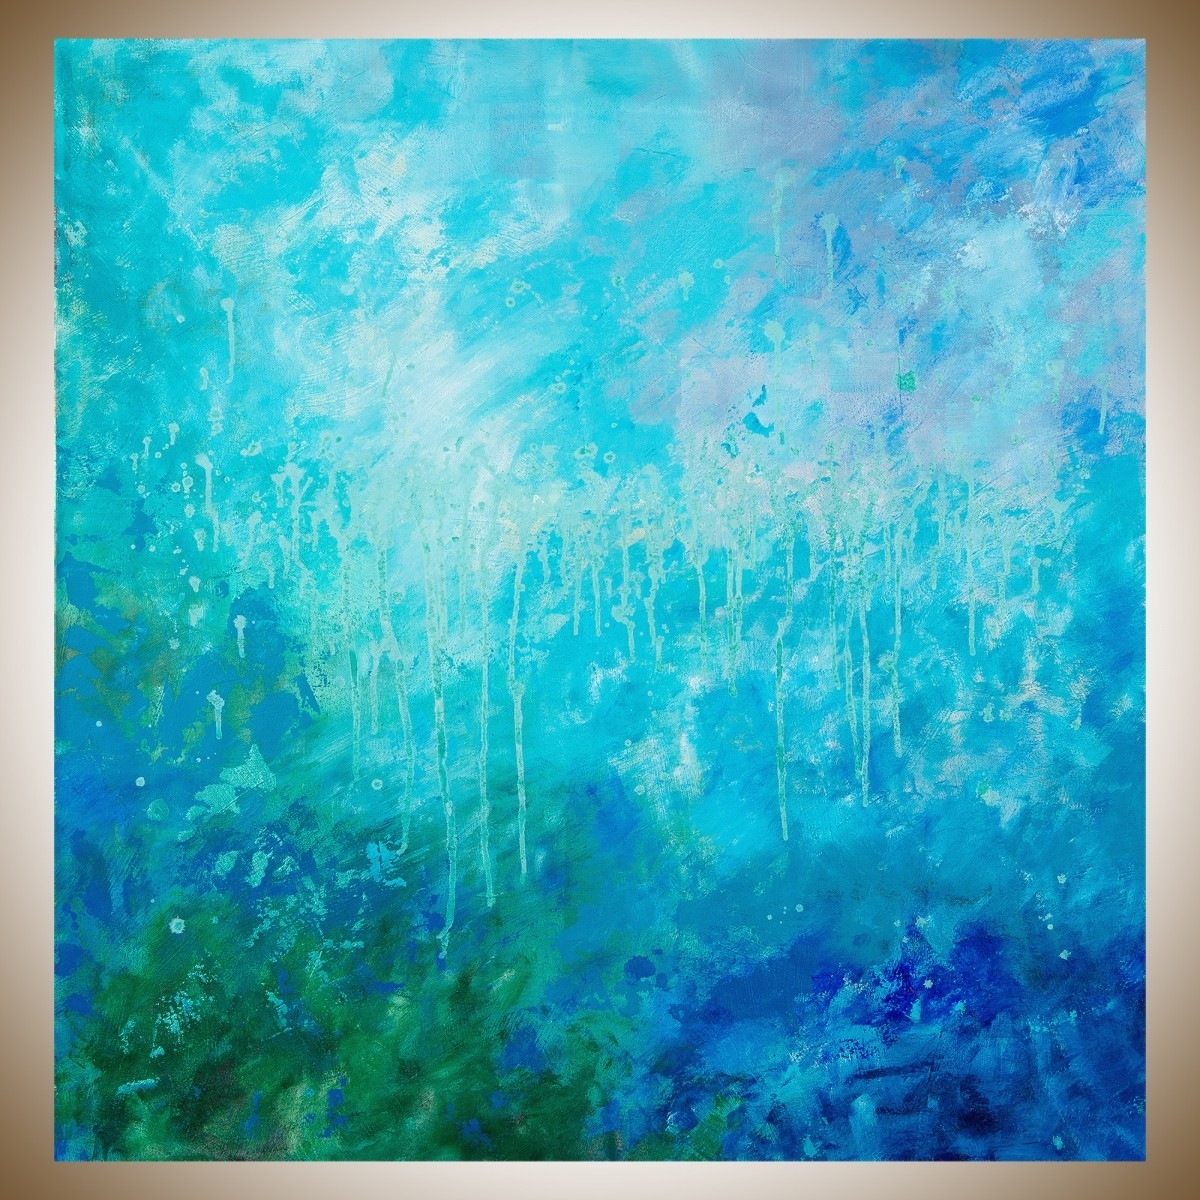 "November Showerqiqigallery 40""x40"" Un Stretched Canvas Pertaining To Newest Blue Canvas Wall Art (View 11 of 15)"